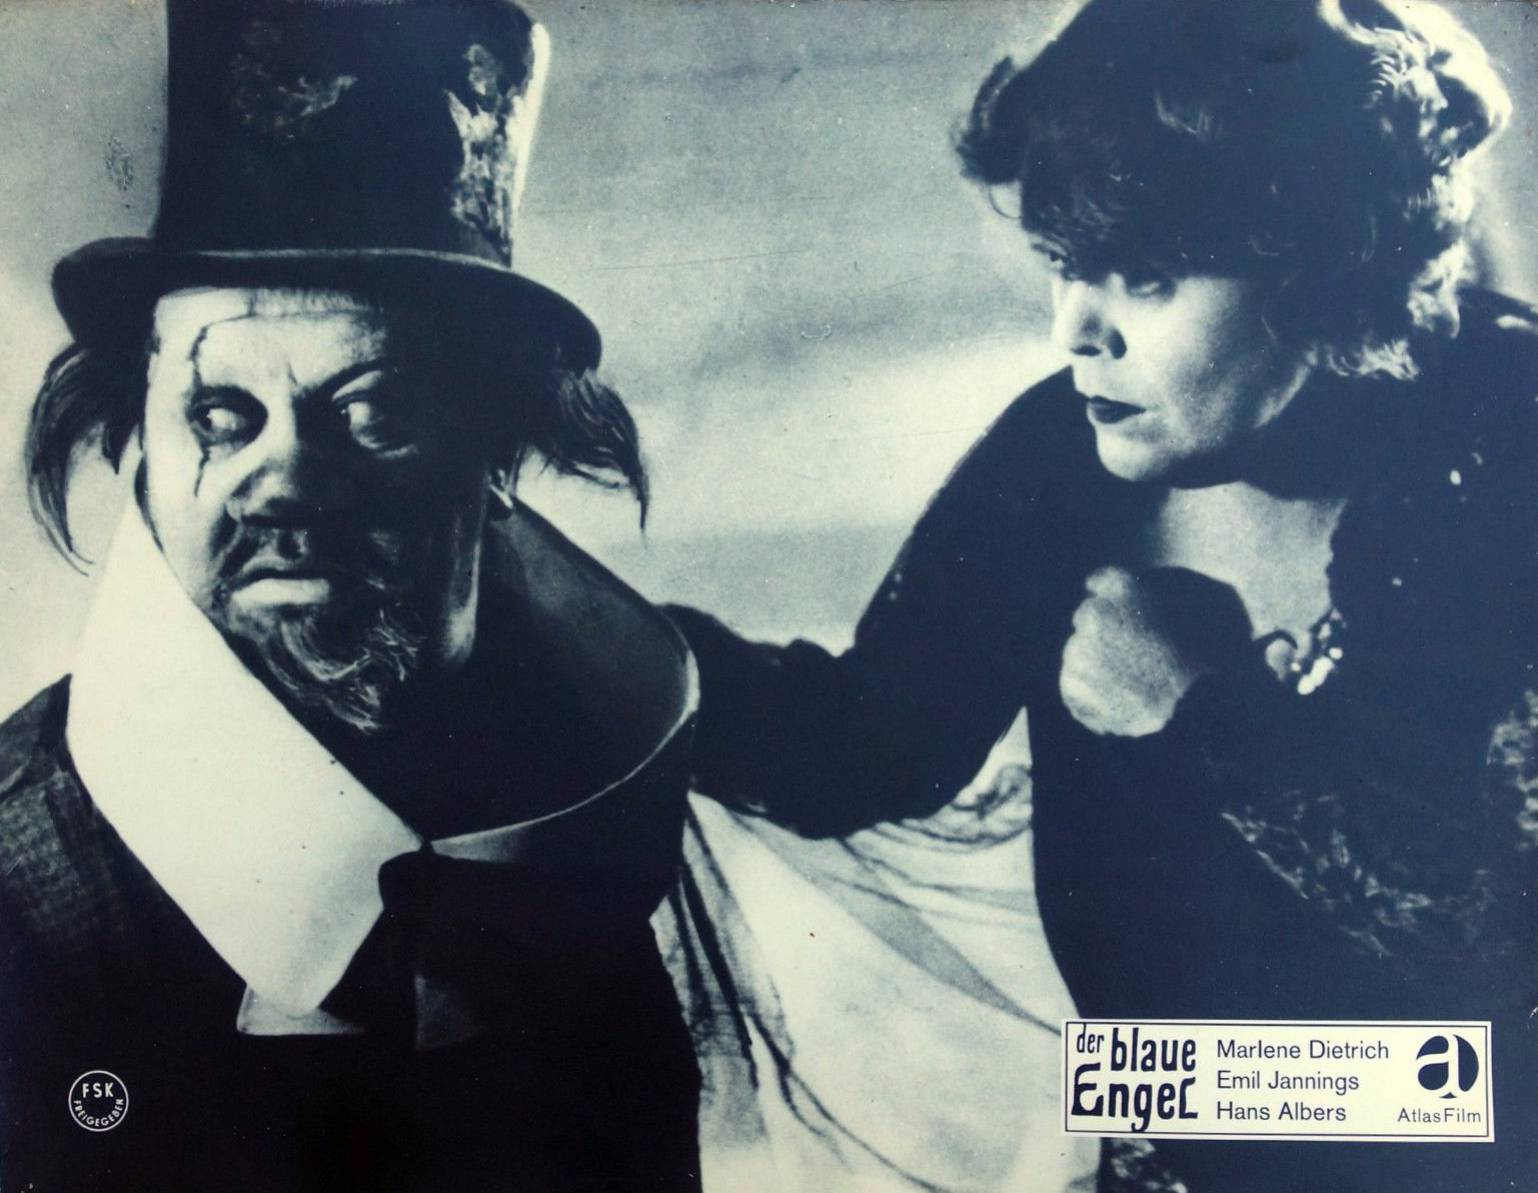 Der Blaue Engel Josef Von Sternberg Decaying Hollywood Mansions Poster And Lobby Cards For The